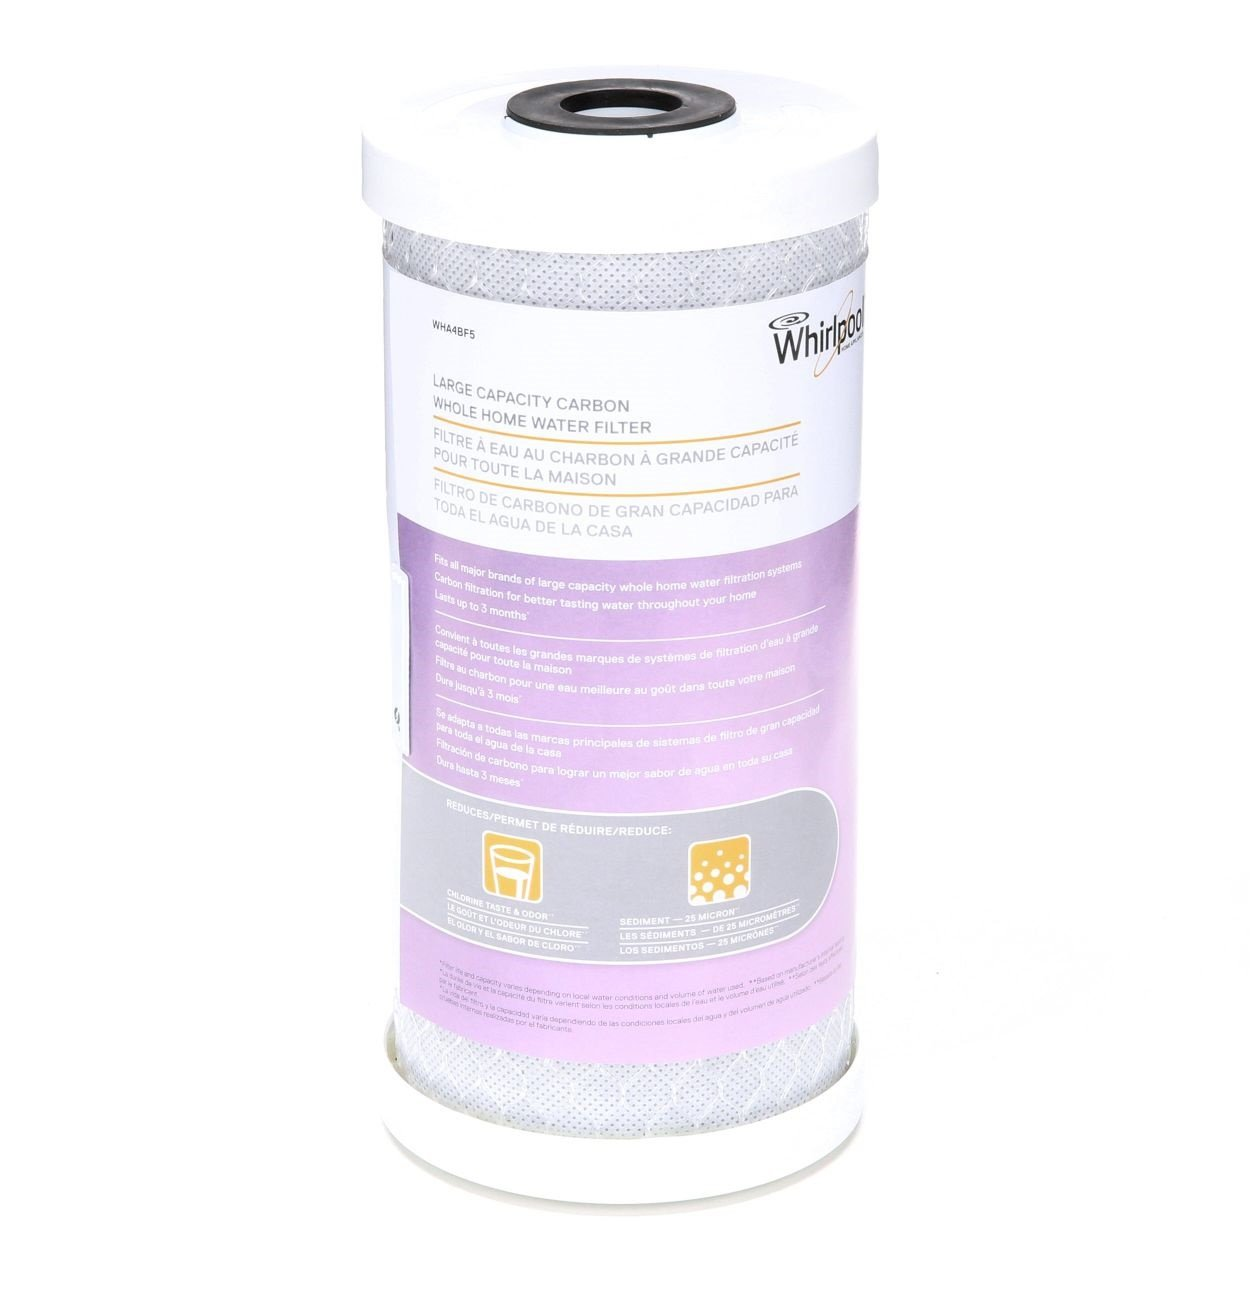 Whirlpool WHA4BF5 Large Capacity Carbon Whole Home Replacement Water Filter